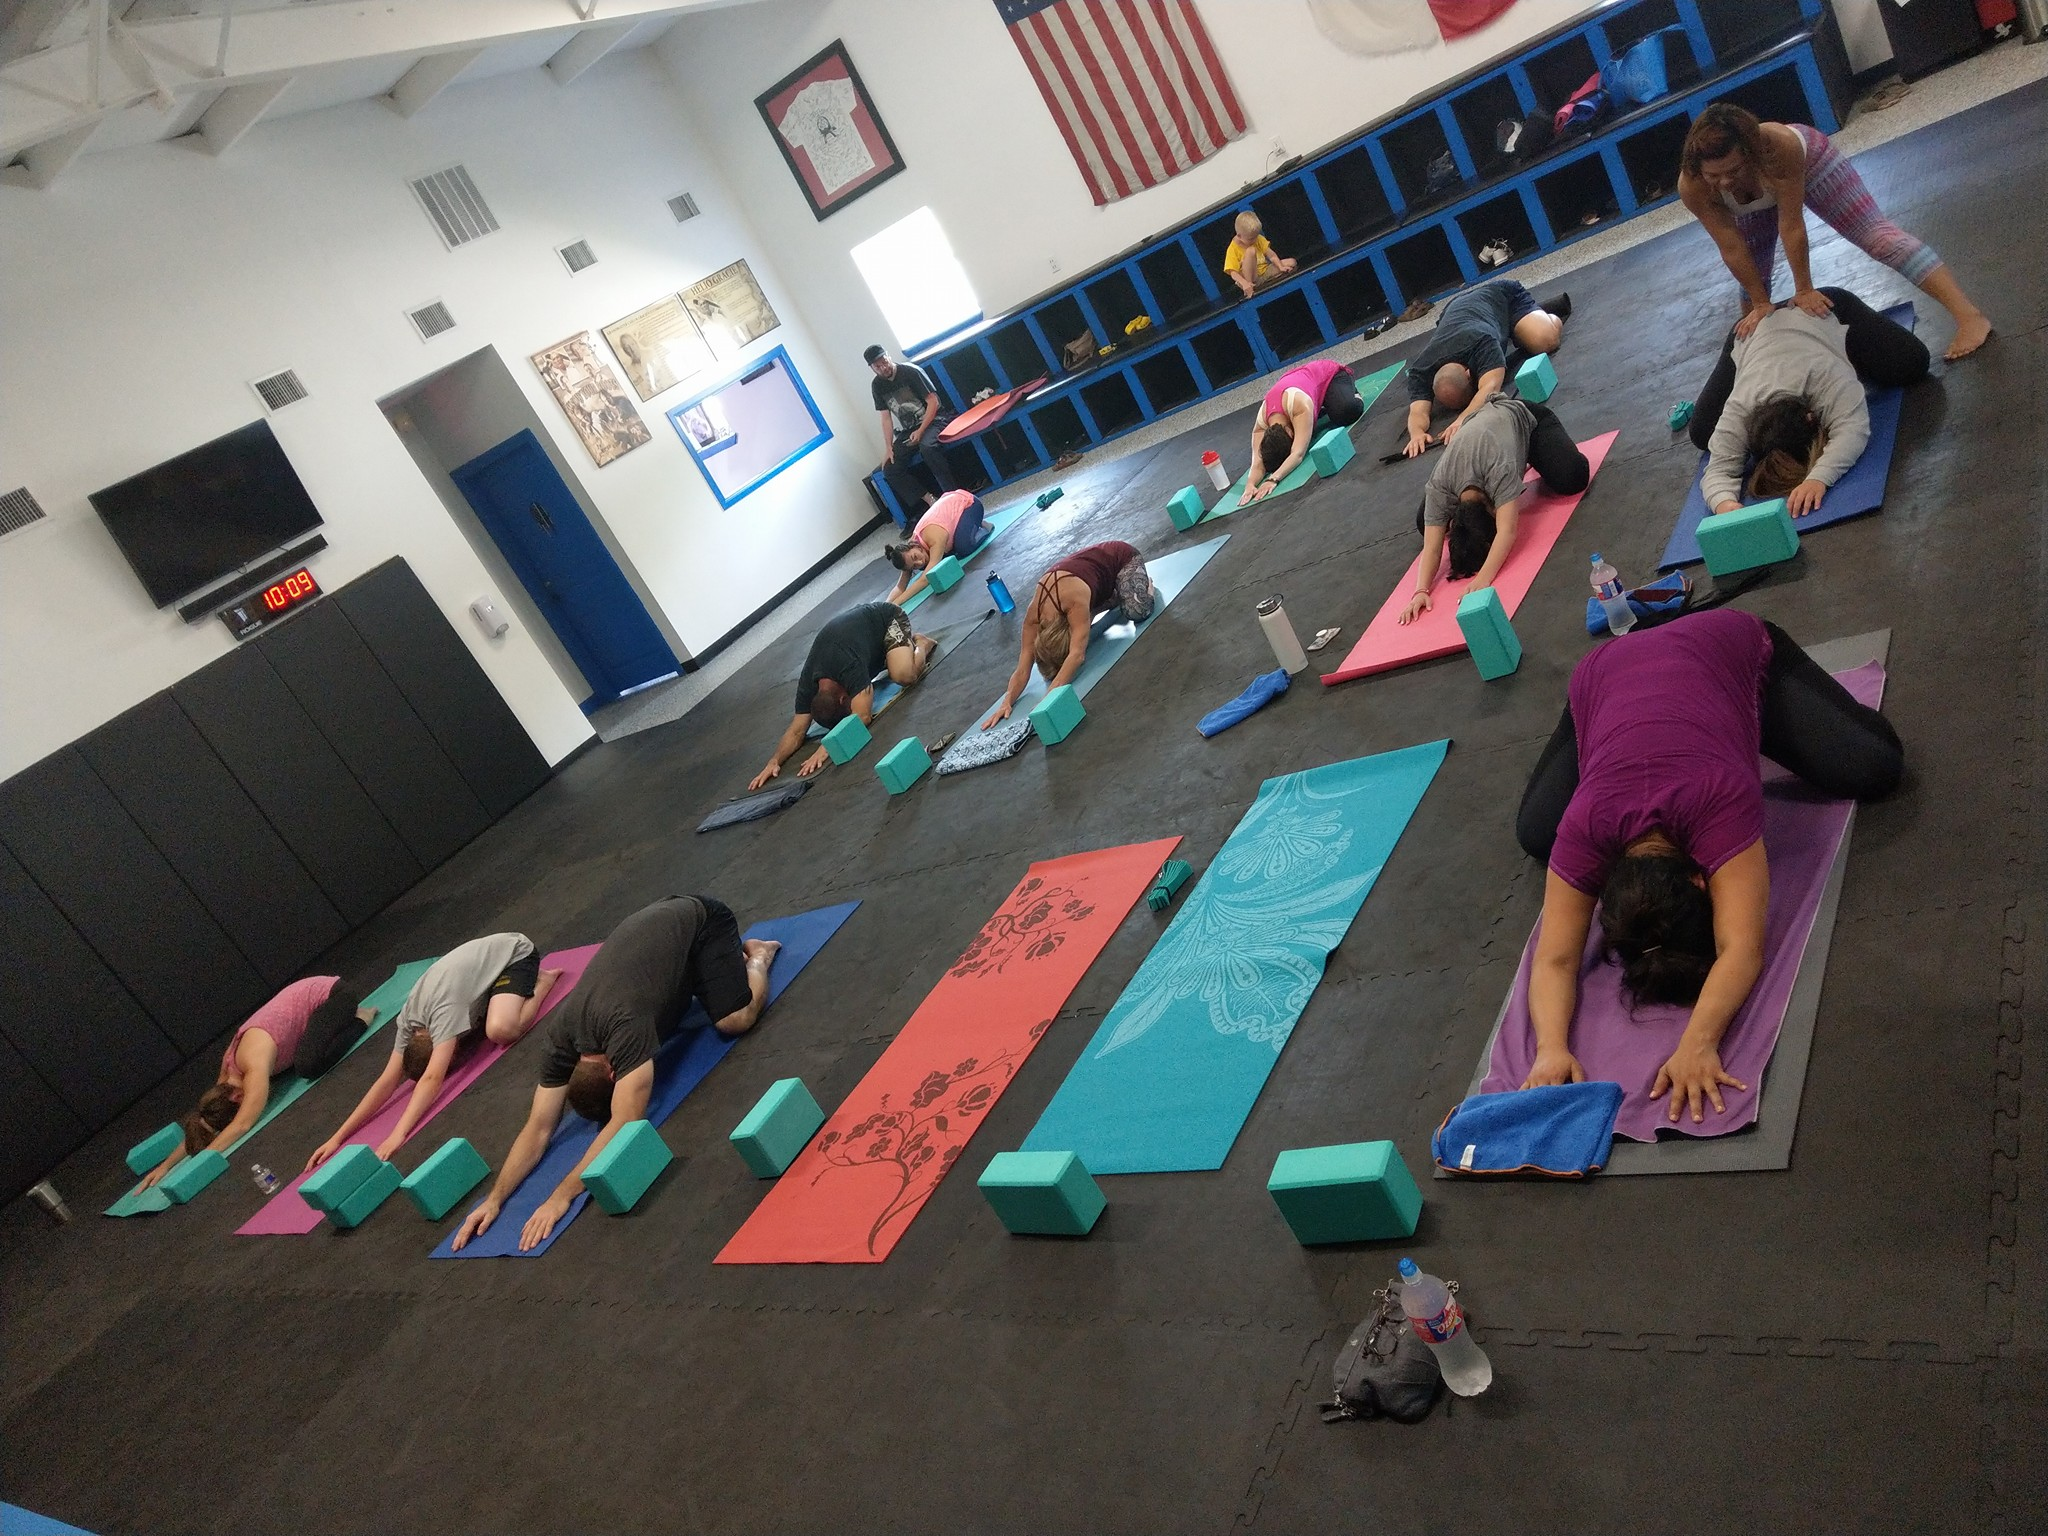 Yoga participants stretching out on mats in the gym